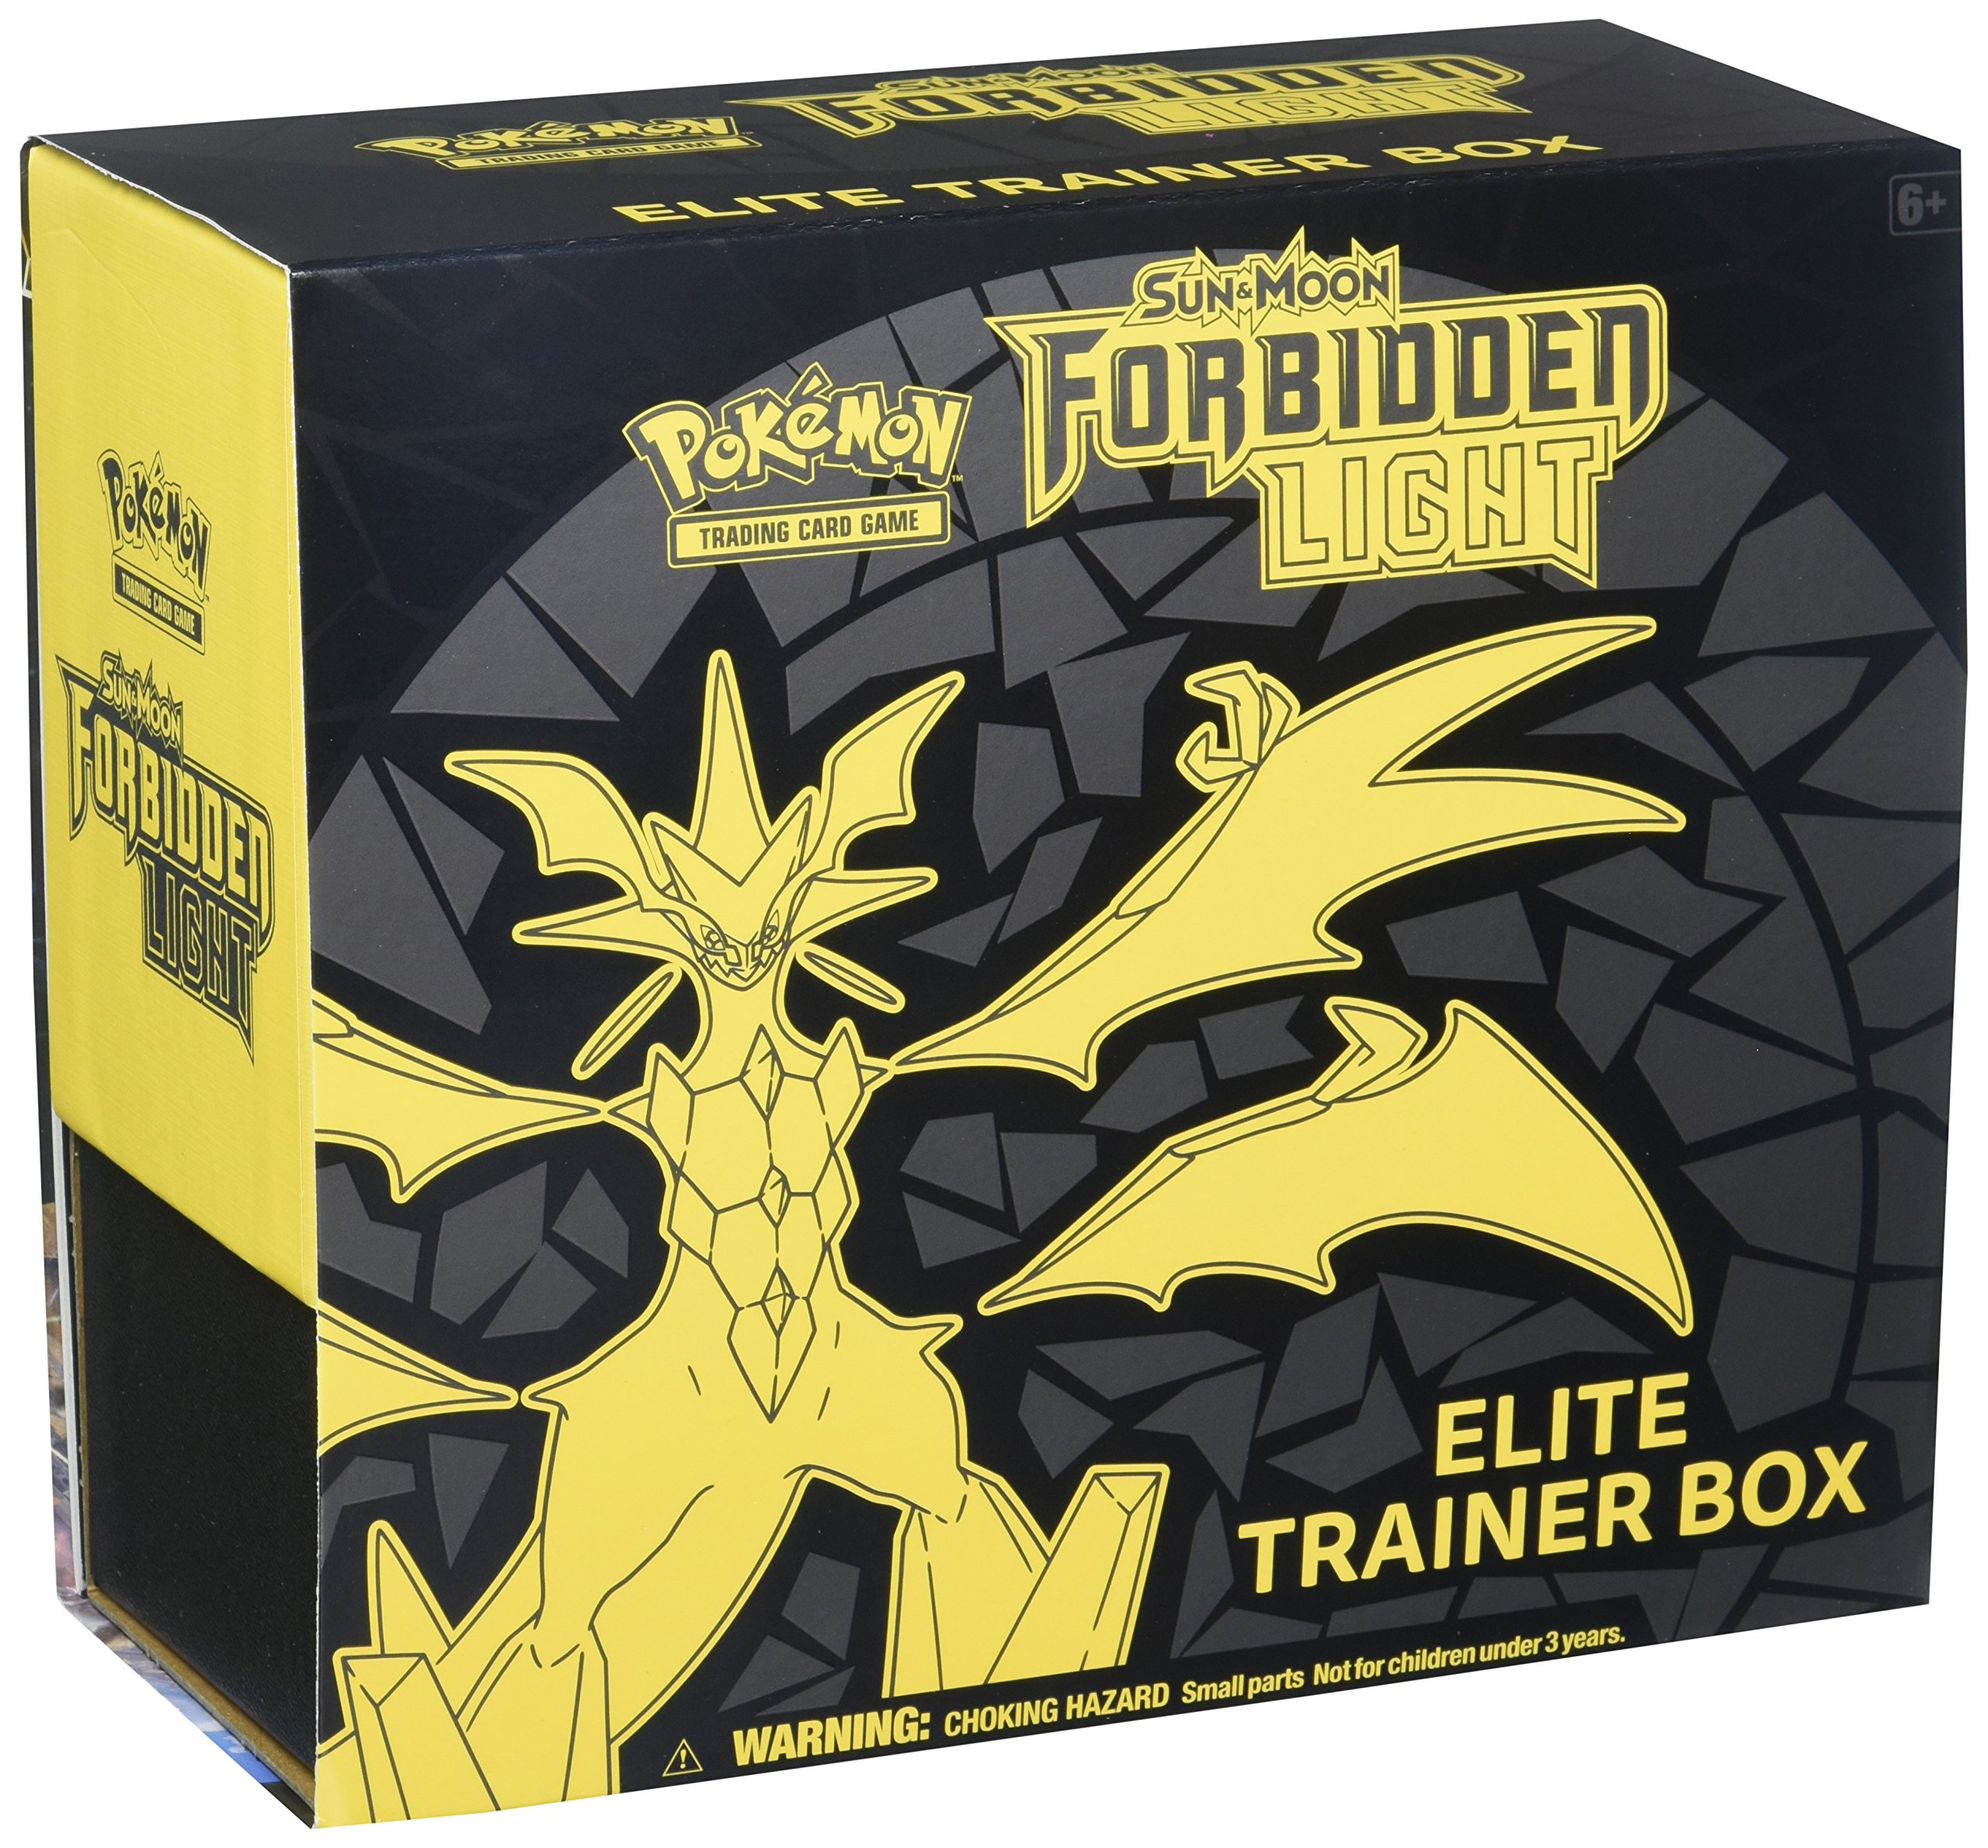 Pokémon TCG: Sun & Moon-Forbidden Light Elite Trainer Includes 125 Total 65 Amazing Card Sleeves Featuring Ultra Necrozma, Ultra Necrozma-GX, Player's Guide, Collector's Box and More